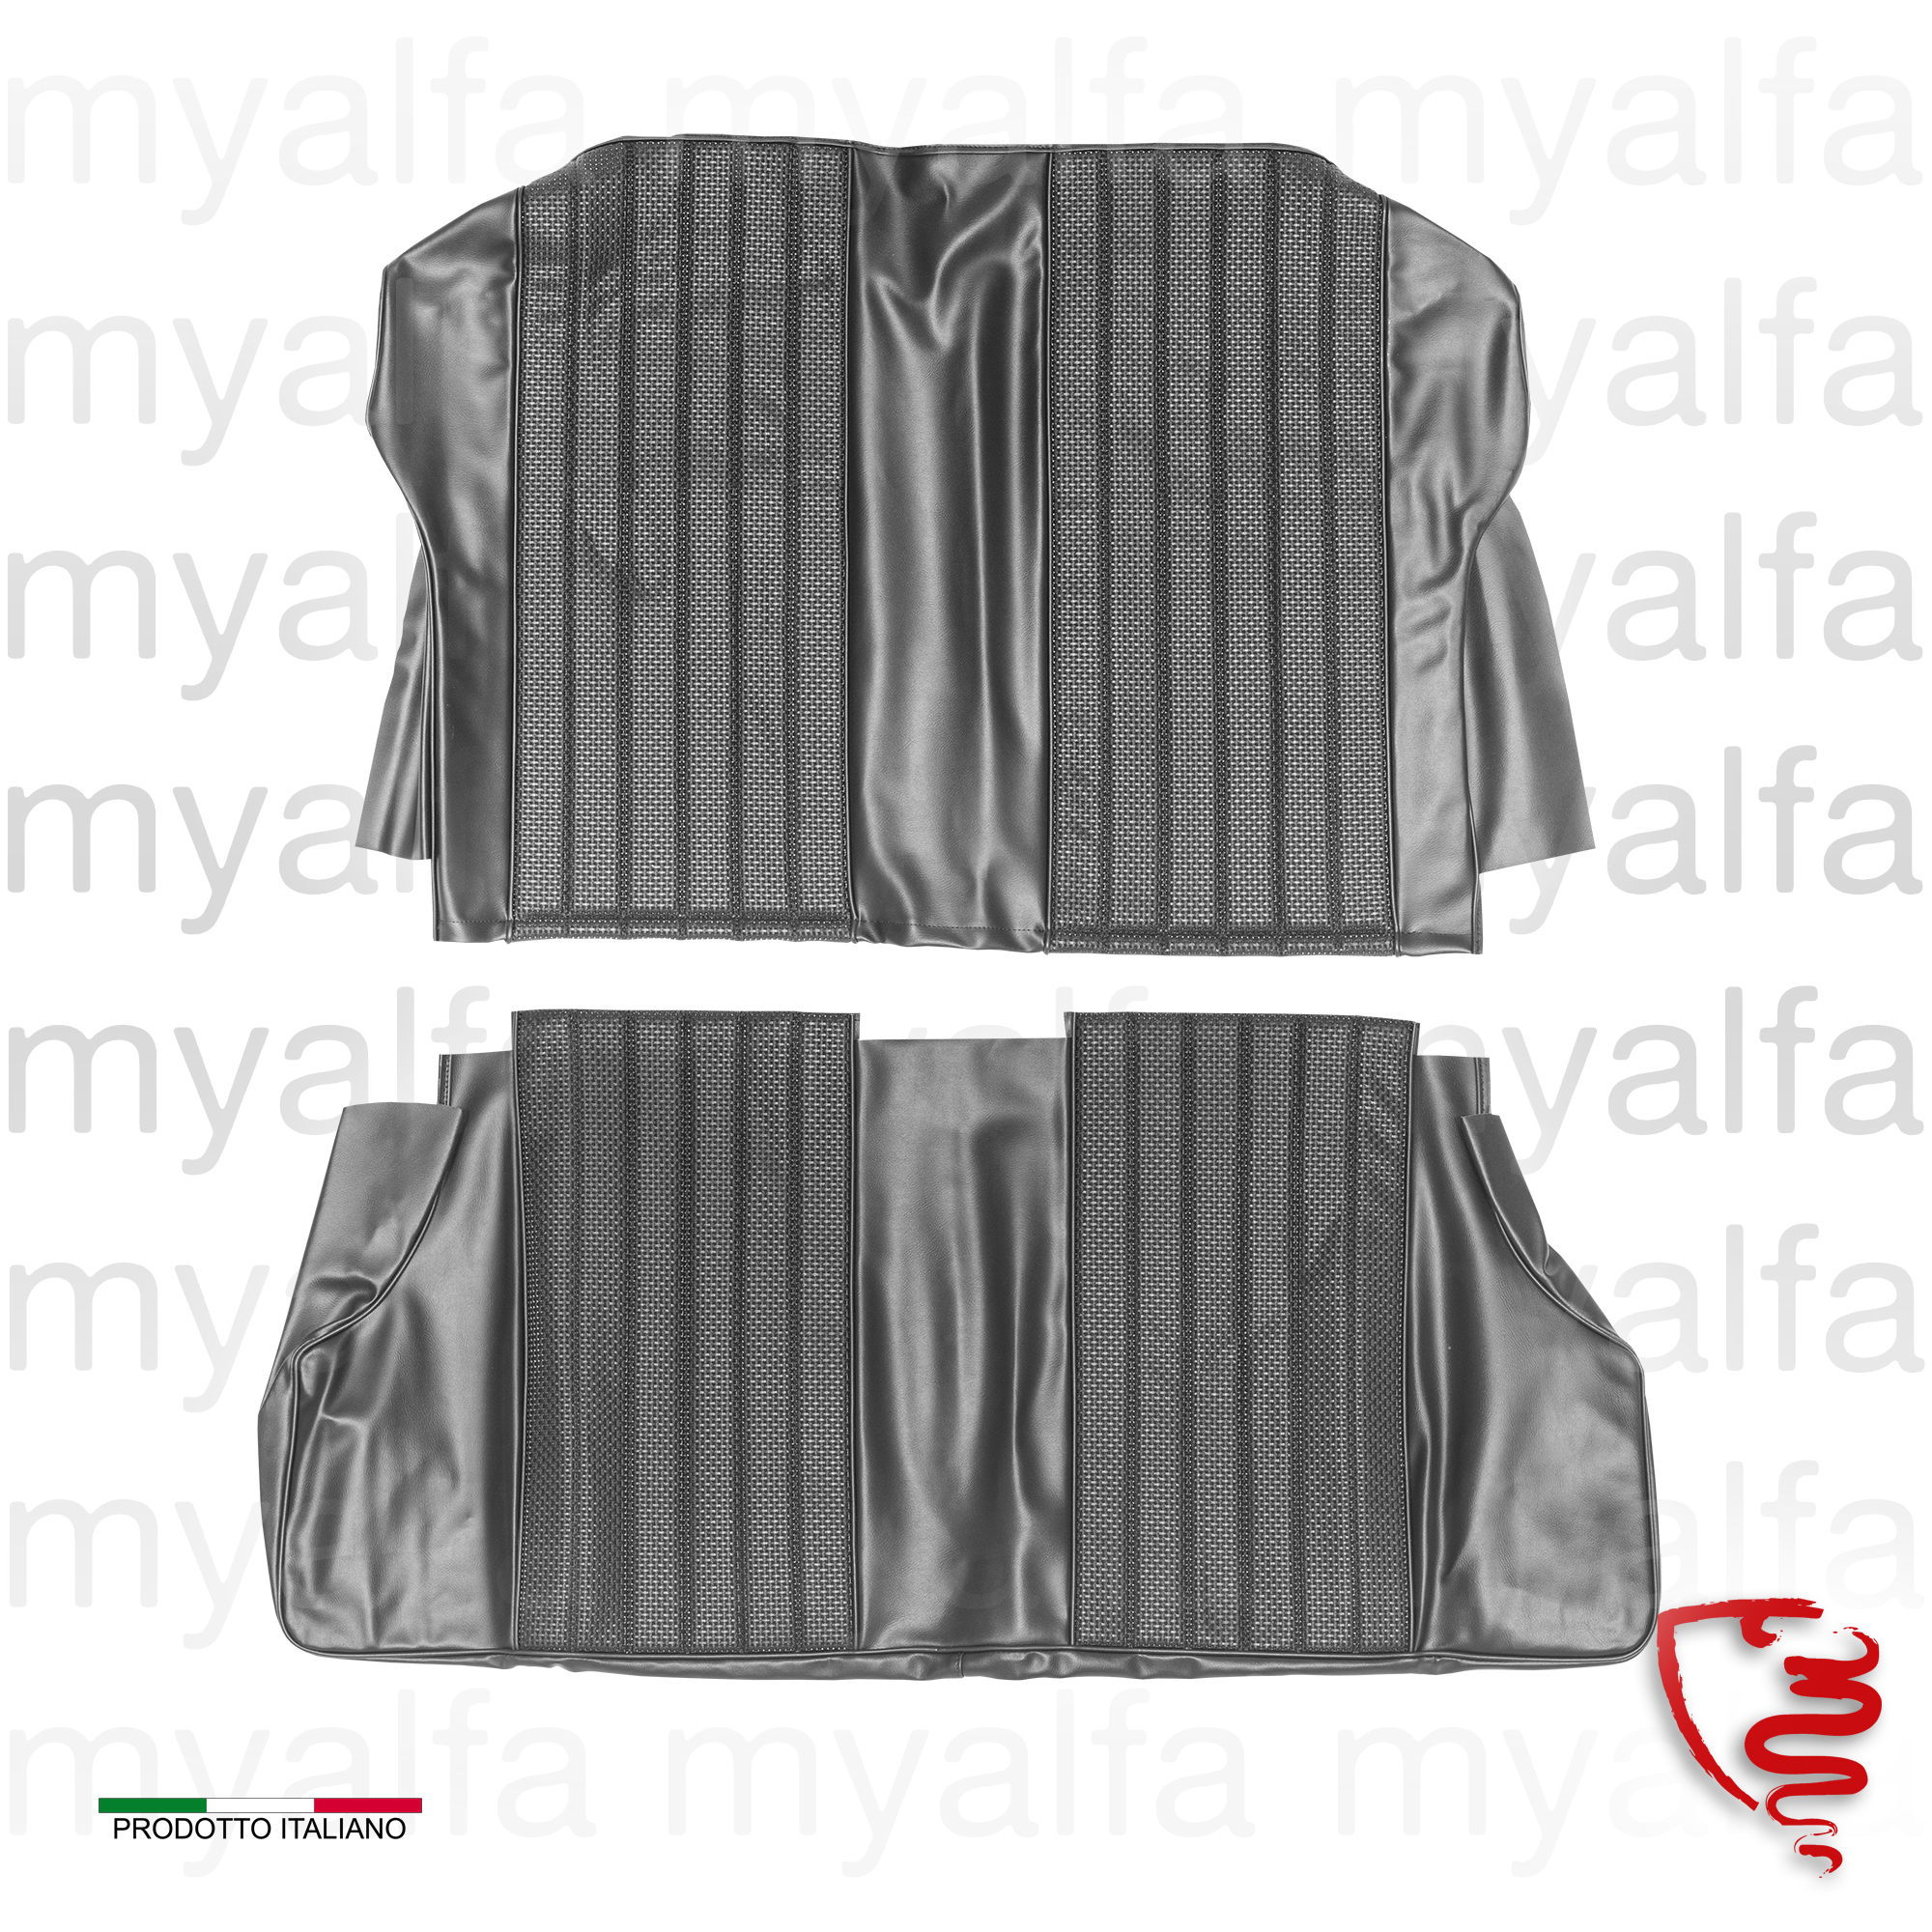 Covers rear seats SPRINT GTV 1600 - Black for 105/115, Coupe, Giulia Sprint GT, Interior, Seats, Seat covers